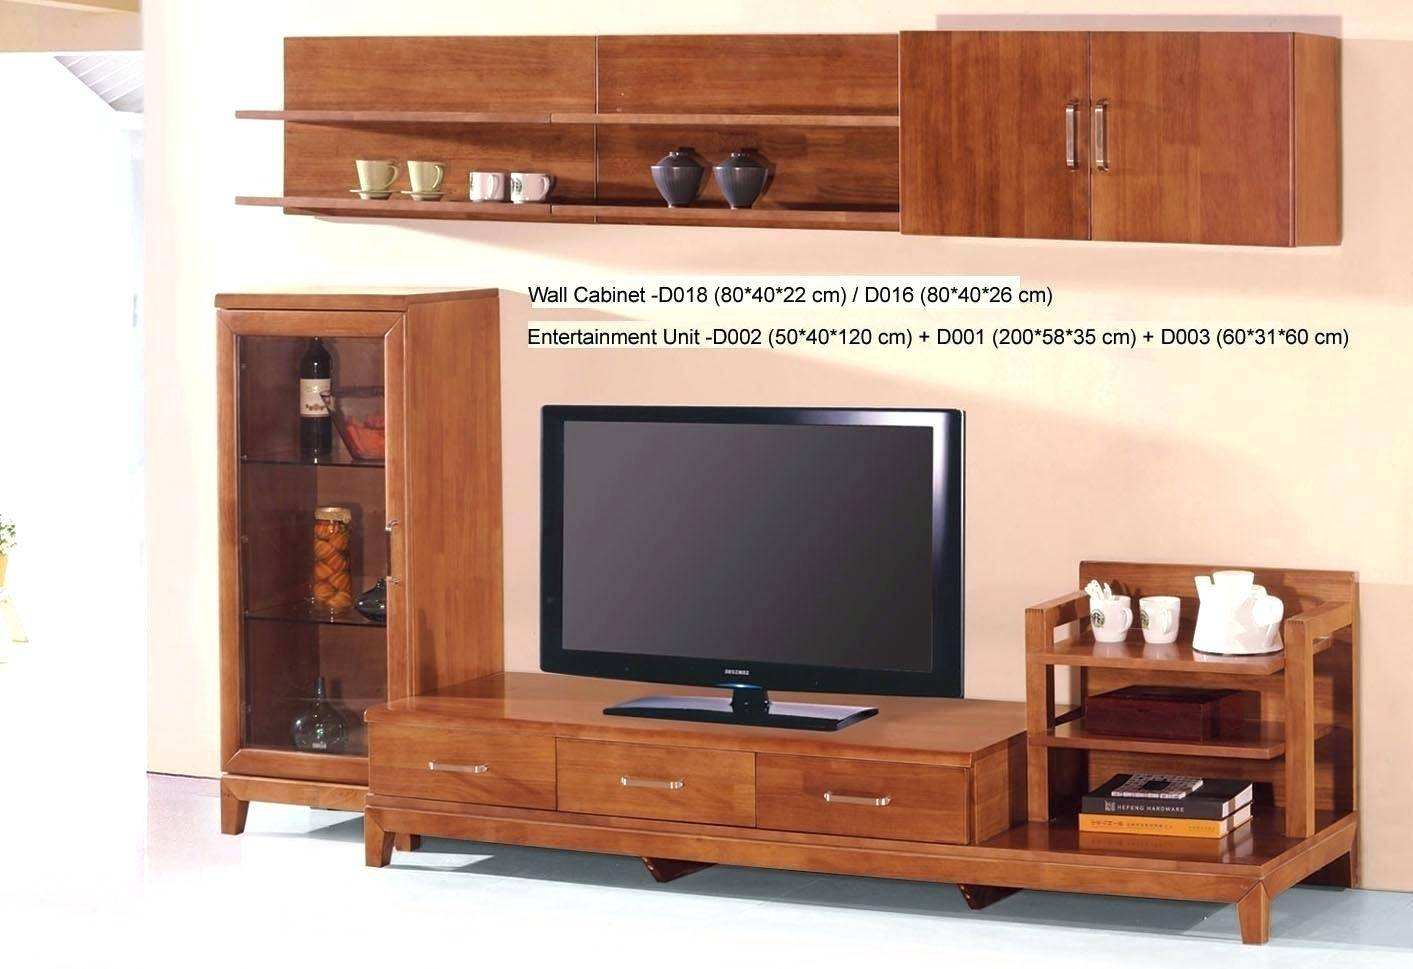 Tv Stand : Bright Country Style Tv Stand Unit Idea In Honey Oak Pertaining To Honey Oak Tv Stands (View 8 of 15)